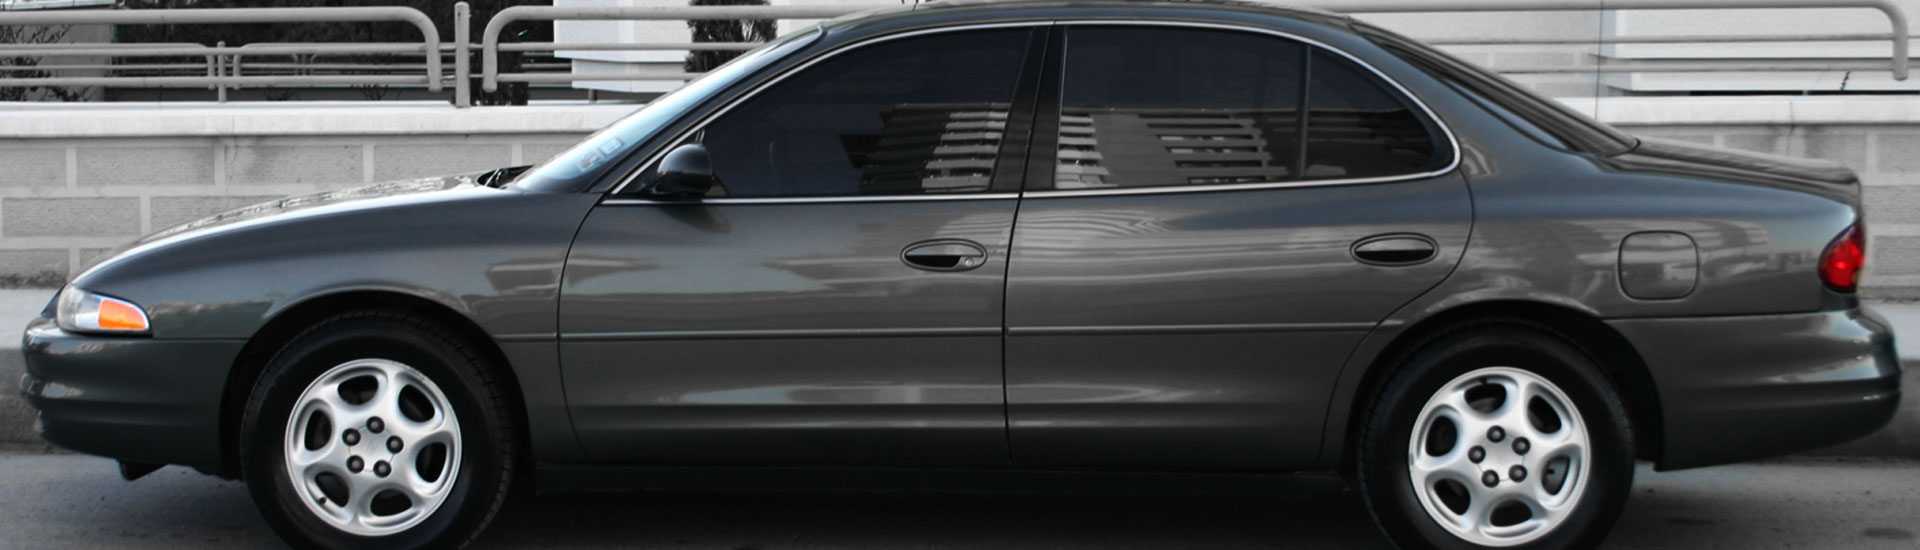 hight resolution of oldsmobile intrigue window tint